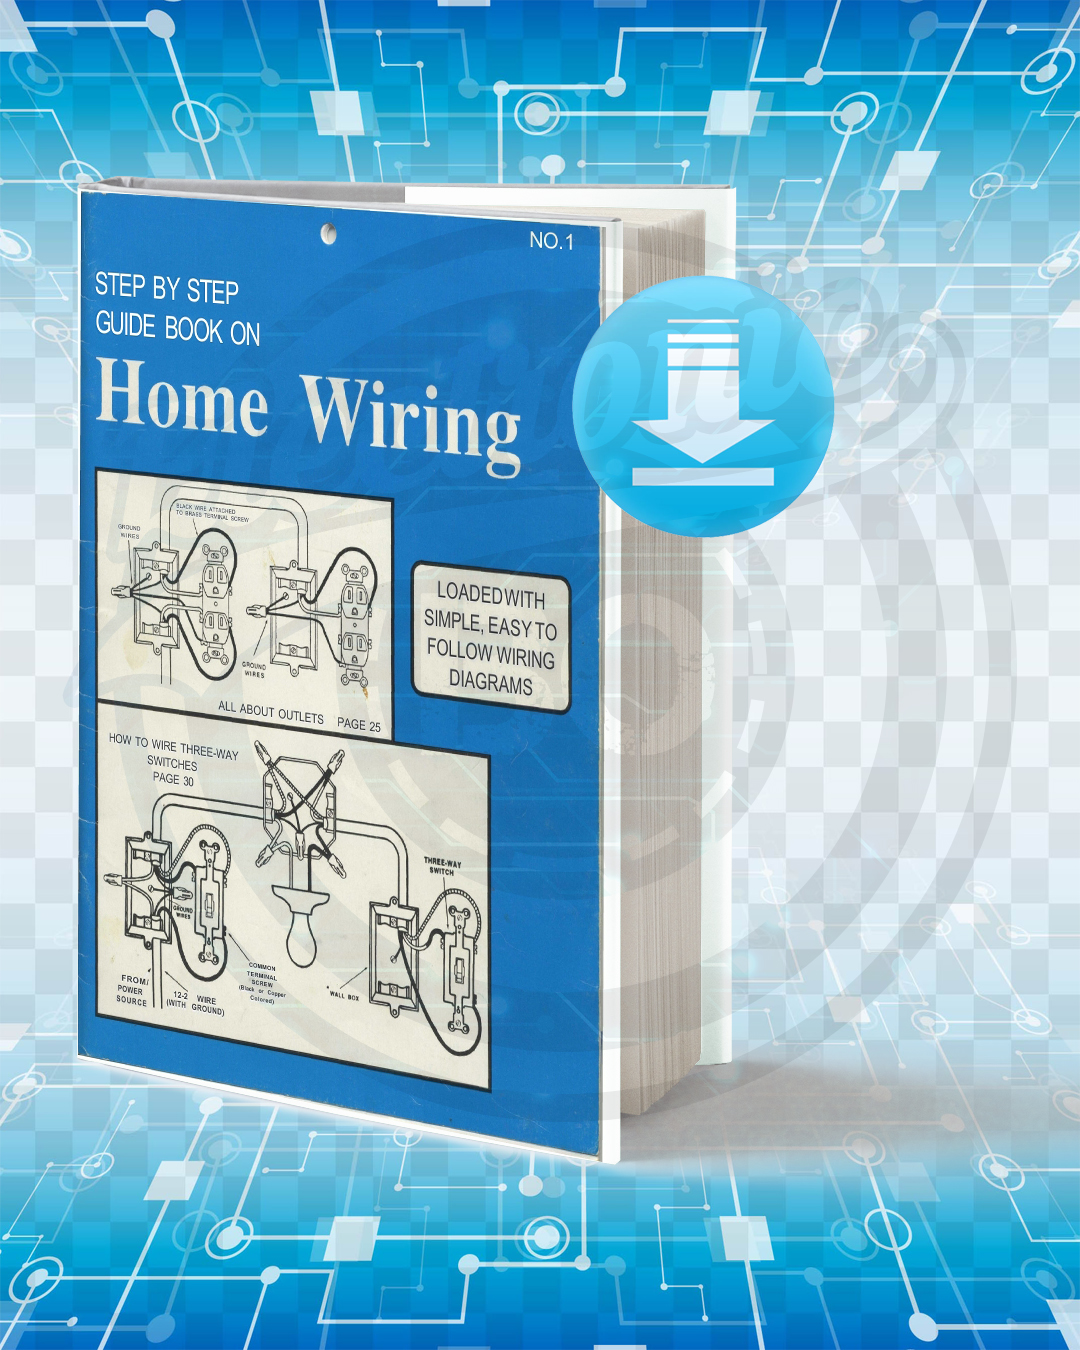 download step by step guide book on home wiring pdf